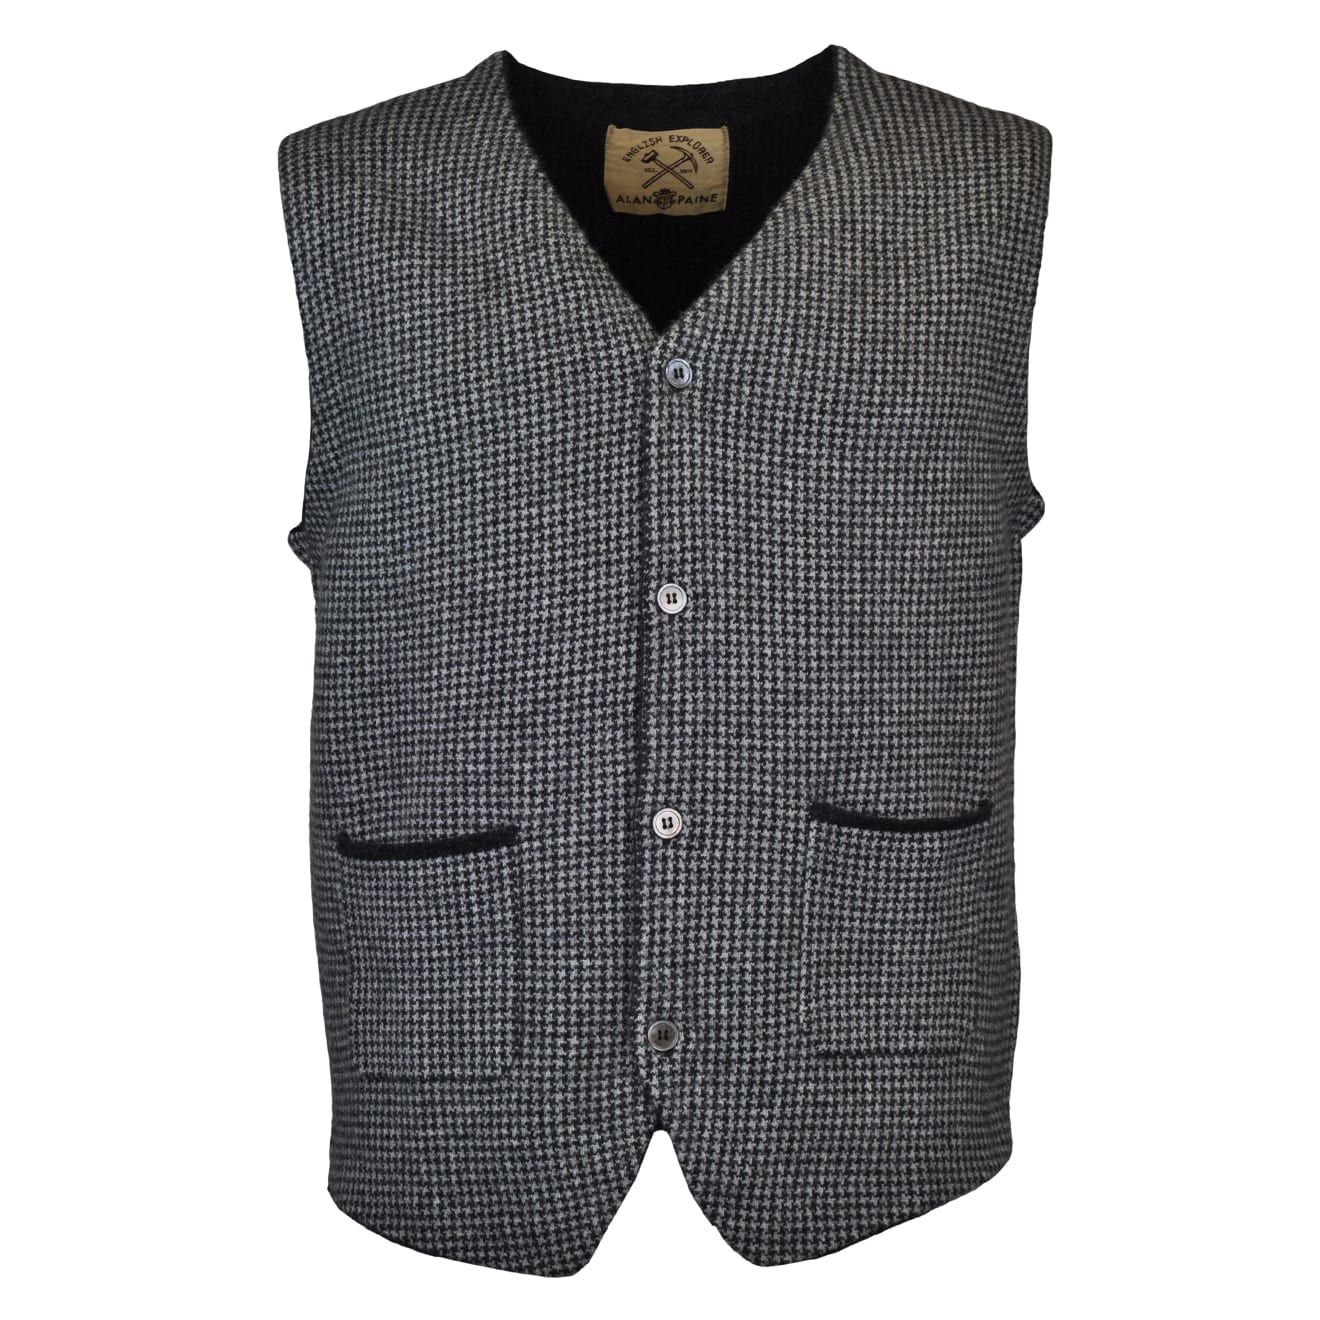 Alan Paine earnmore button knit waistcoat charcoal